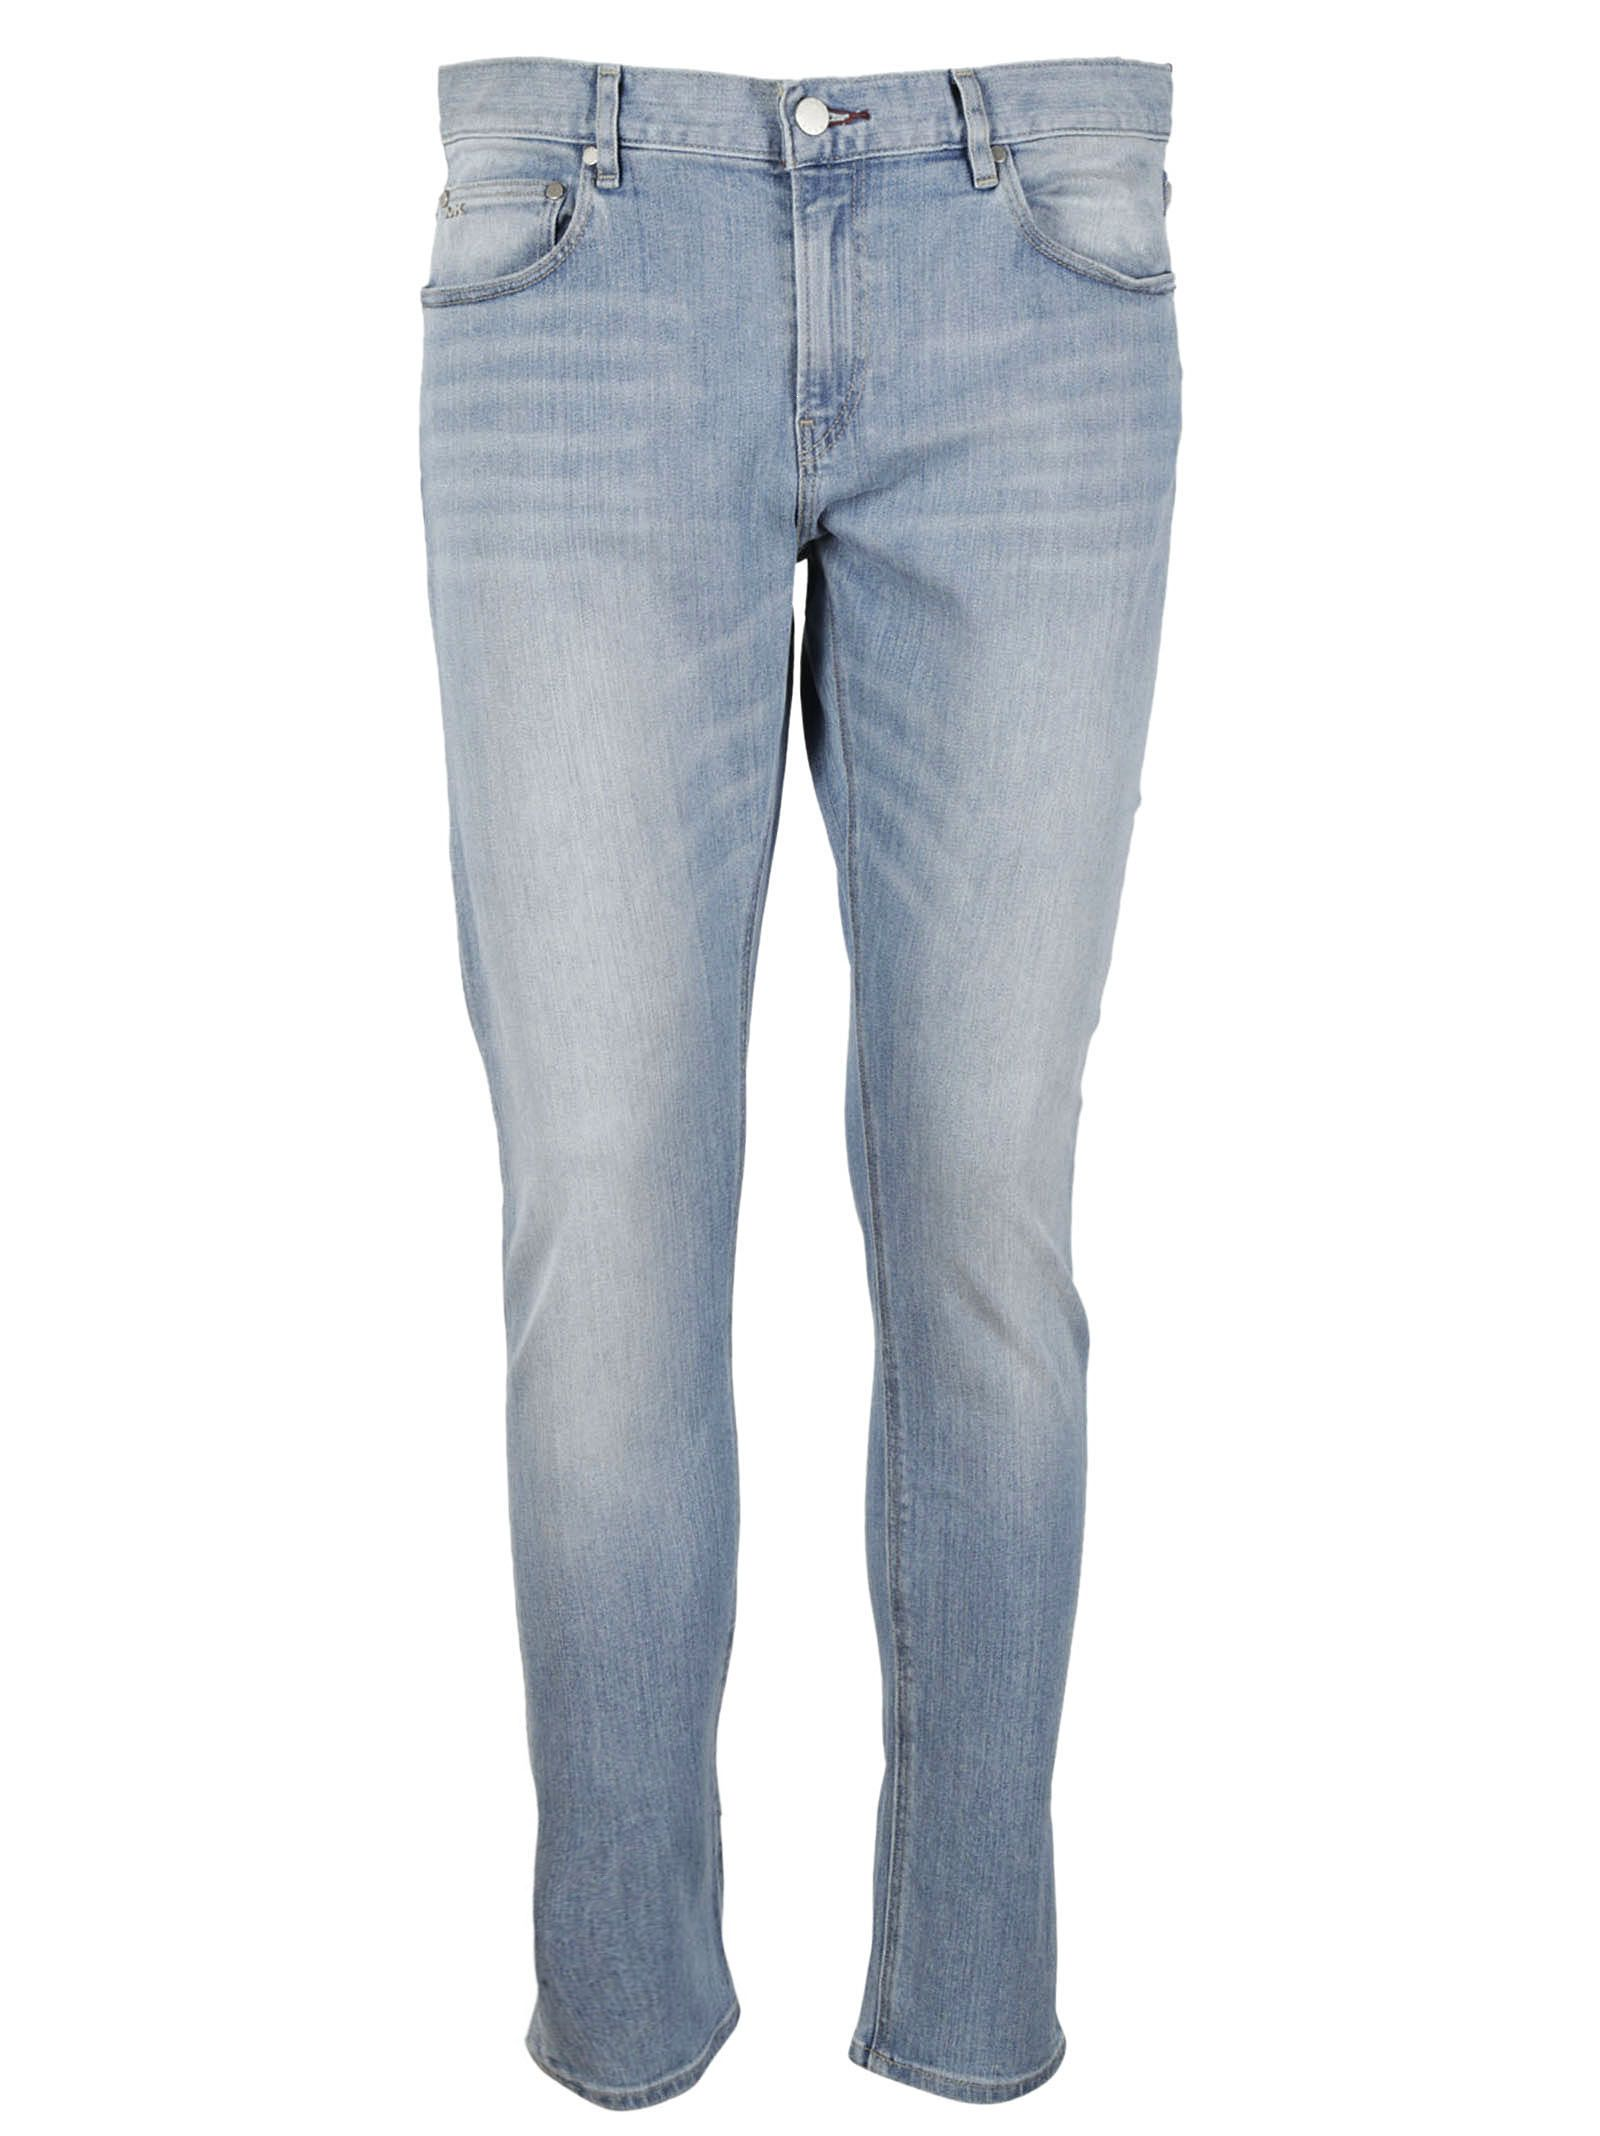 Michael Kors Slim Fit Stretch Jeans